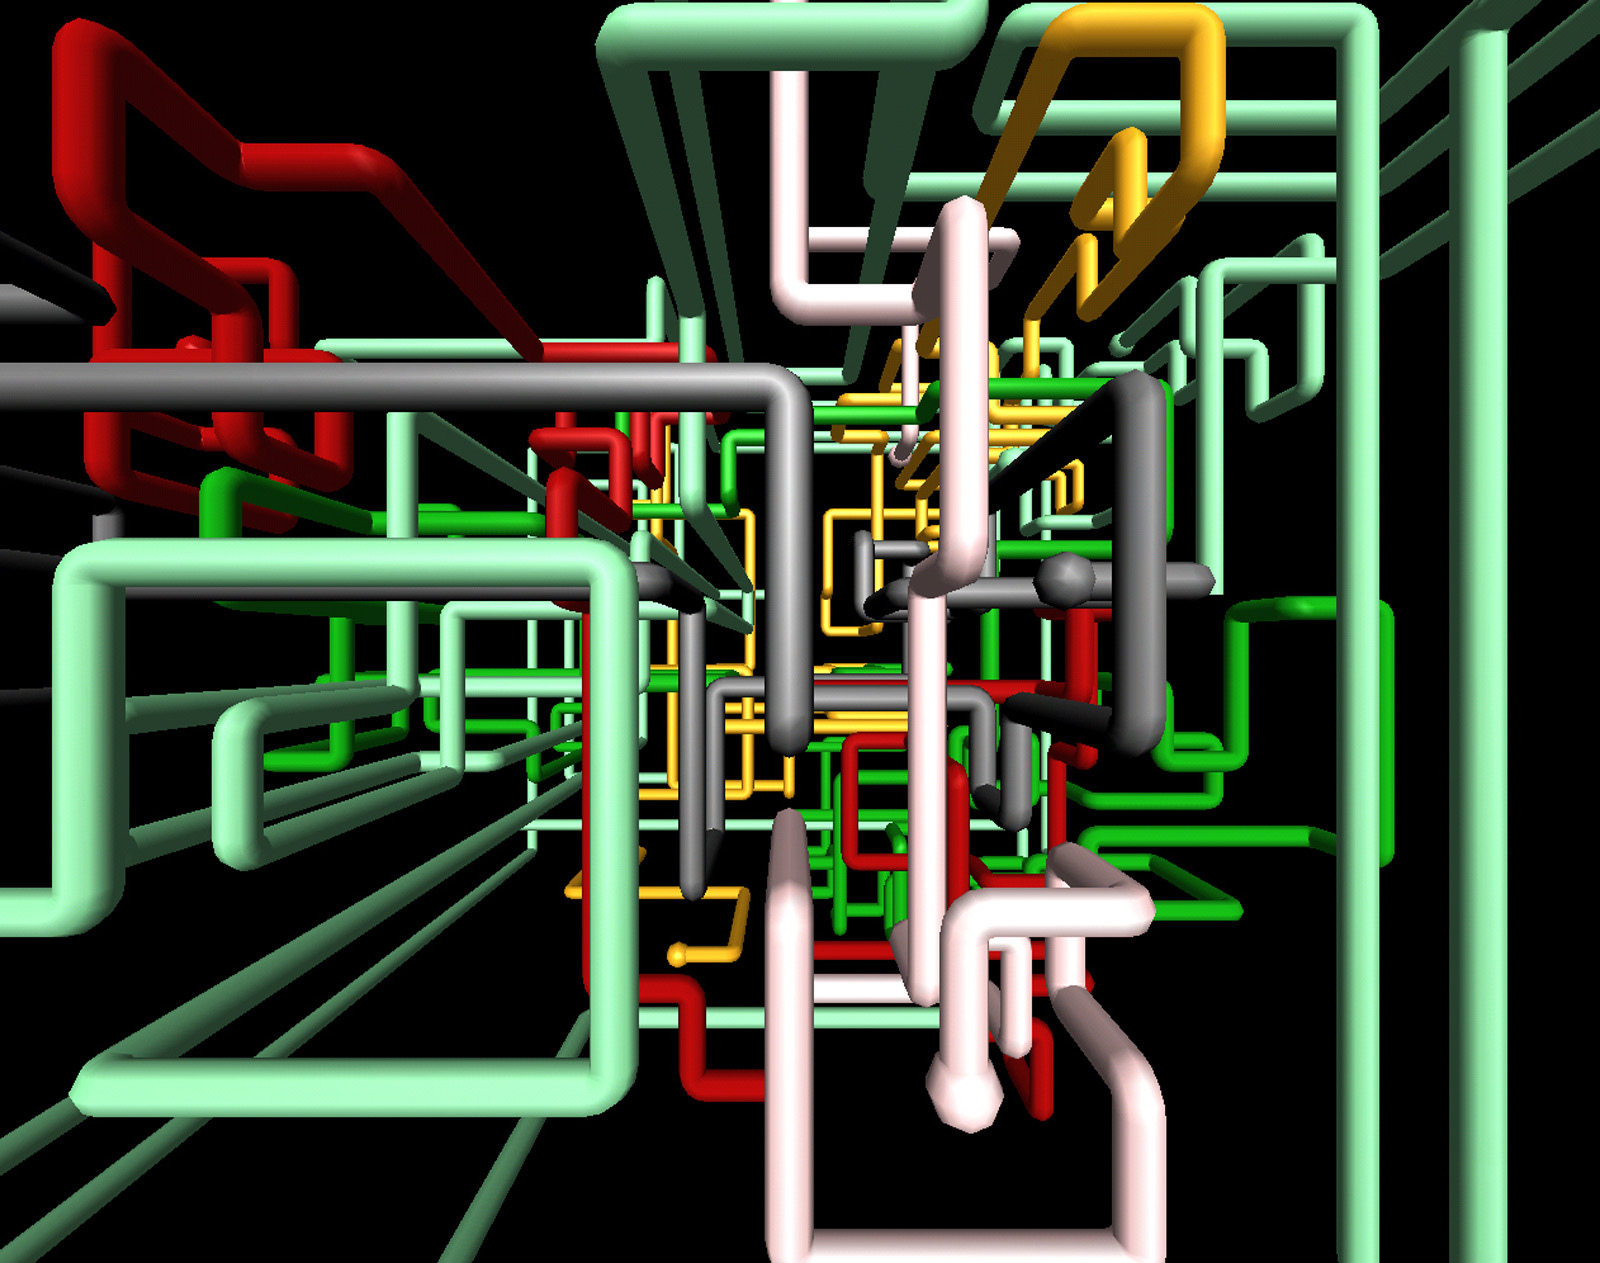 3d Live Wallpaper For Windows Xp Free Download Pipe Maze 2298 Stockarch Free Stock Photos